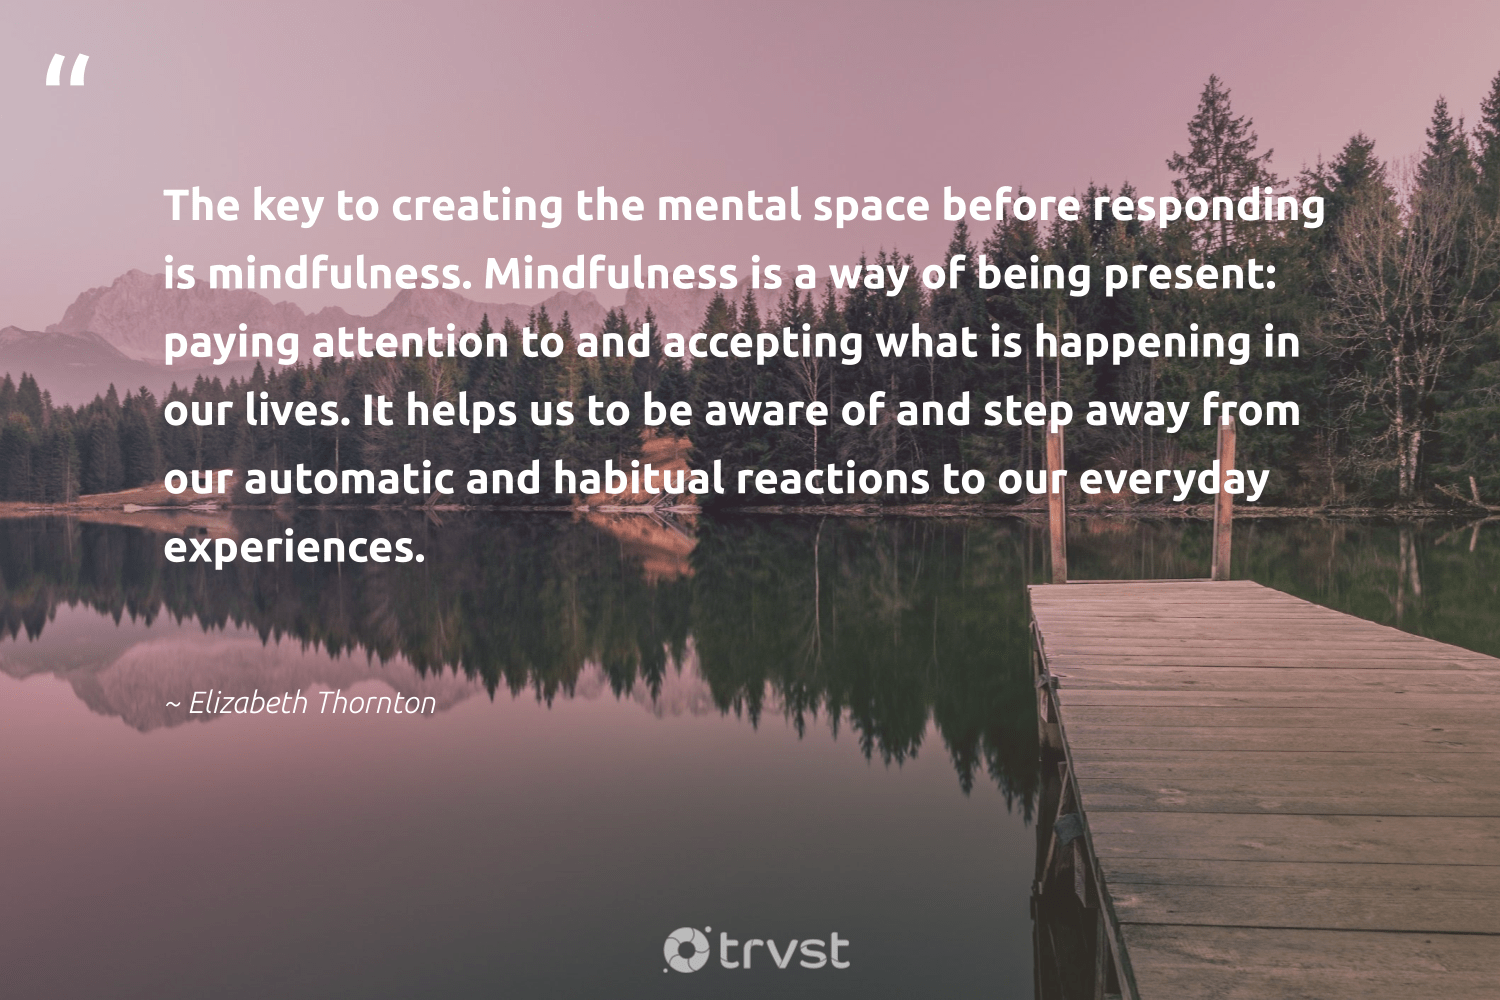 """""""The key to creating the mental space before responding is mindfulness. Mindfulness is a way of being present: paying attention to and accepting what is happening in our lives. It helps us to be aware of and step away from our automatic and habitual reactions to our everyday experiences.""""  - Elizabeth Thornton #trvst #quotes #mindfulness #mindful #positivity #togetherwecan #takeaction #meditate #happiness #health #dosomething #motivation"""